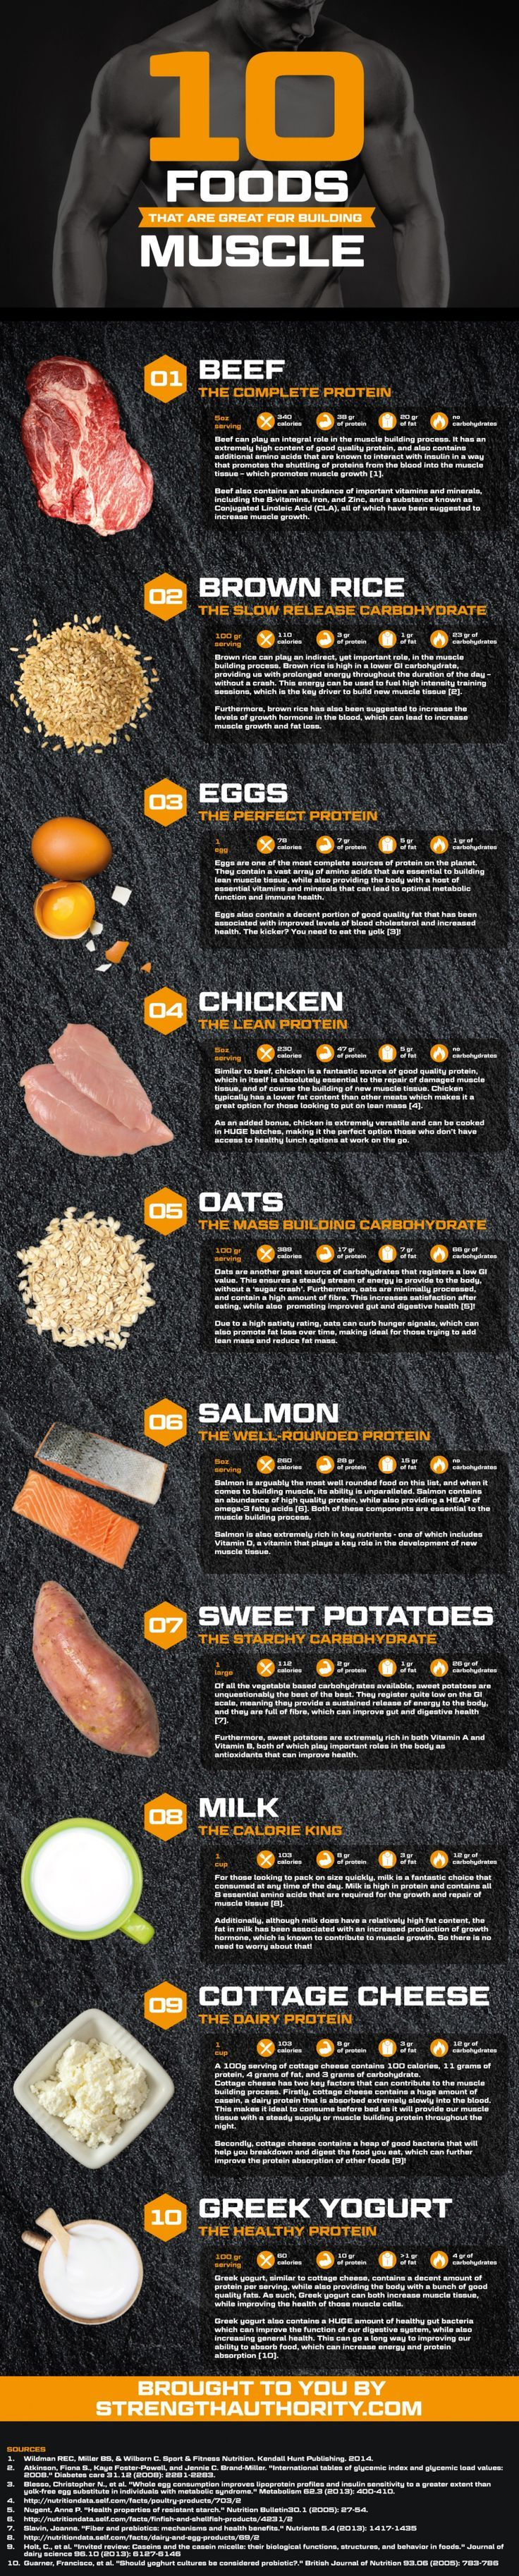 Here are 10 foods that are great for building muscle. #musclebuildingfoods